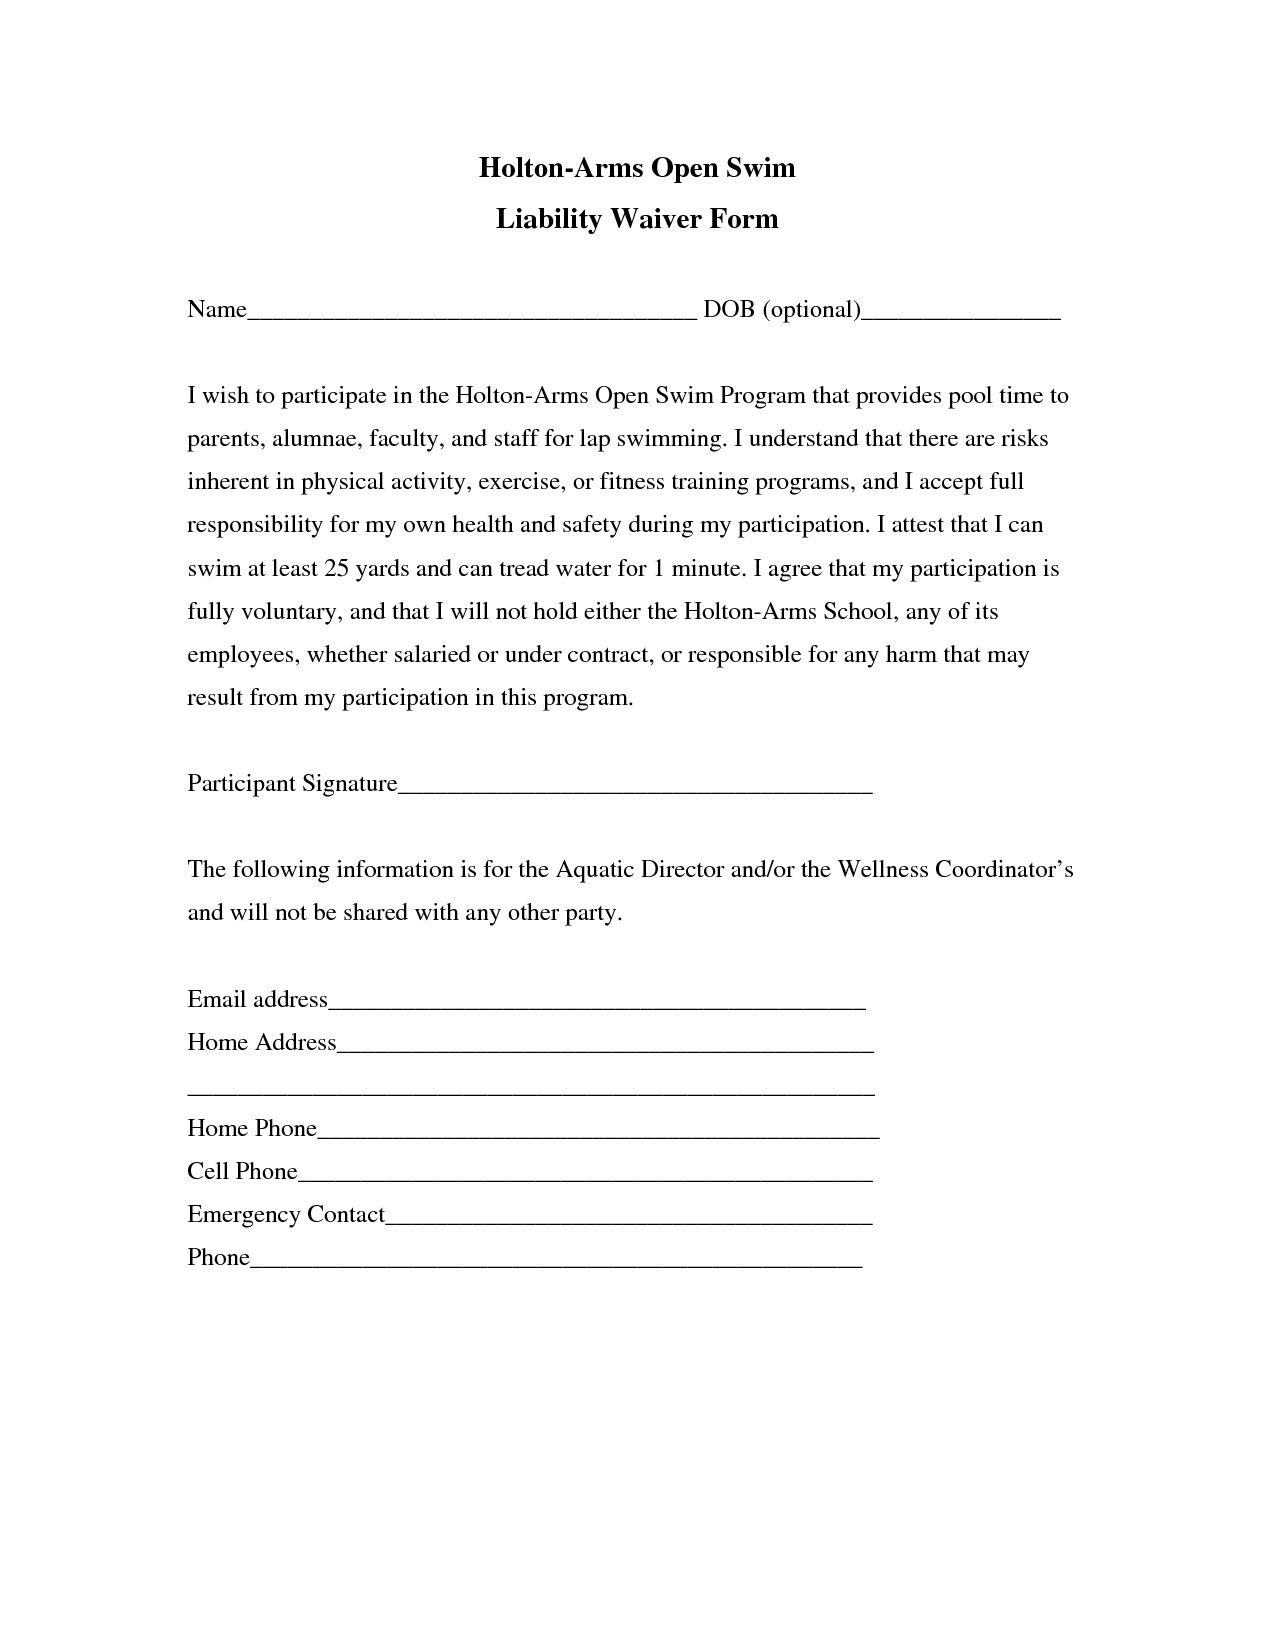 28 General Liability Waiver Form Template In 2020 With Images